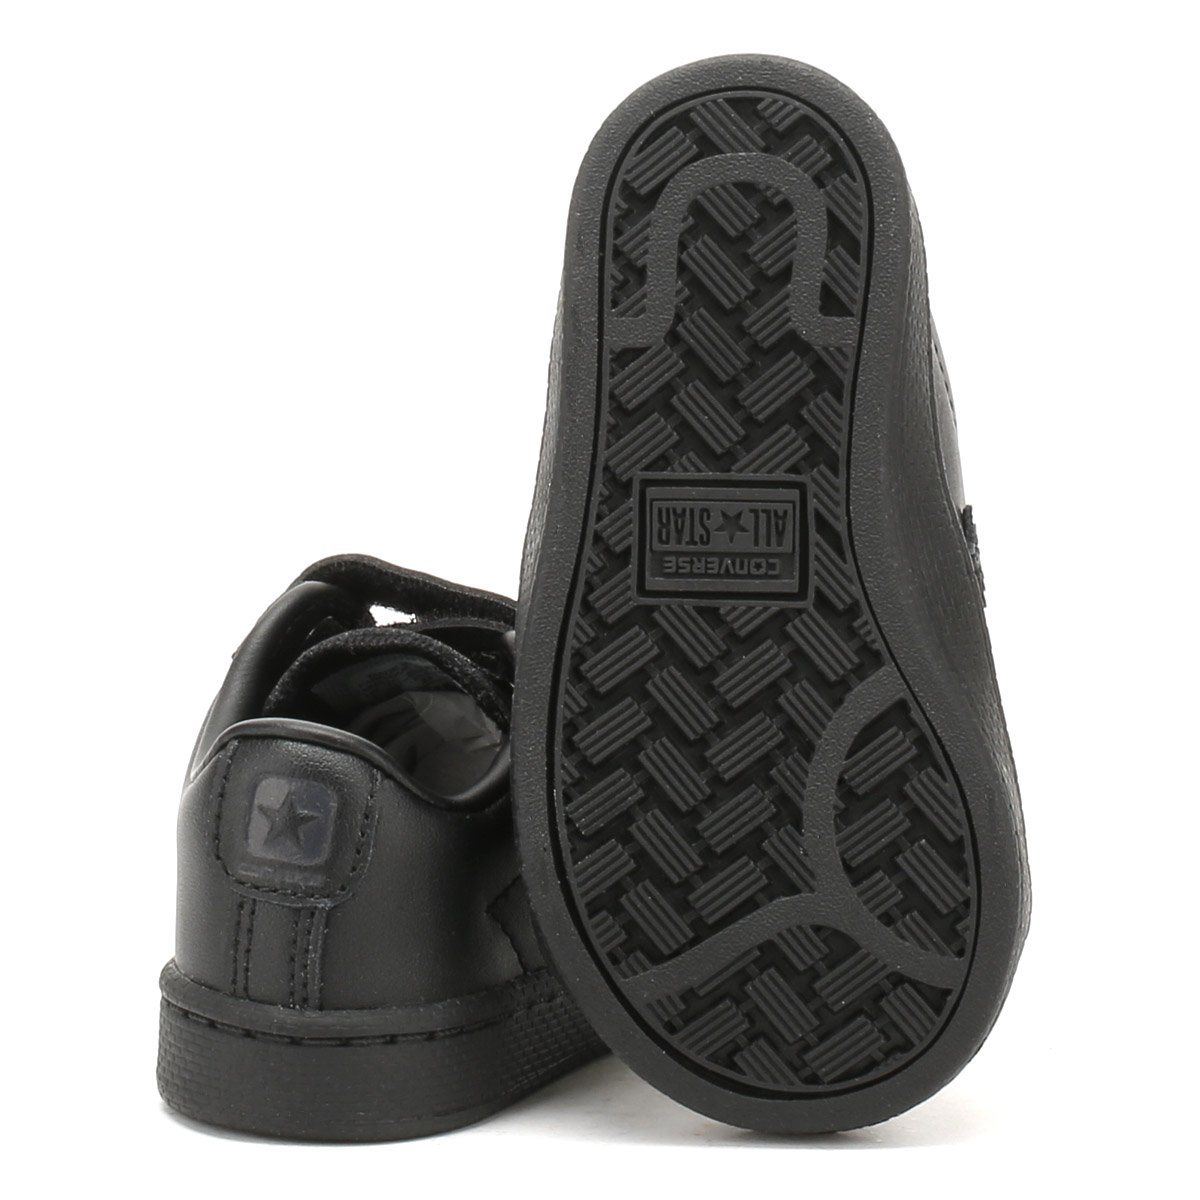 c66048c93e88 Converse PL 2V OX Infant Trainers Boys Black - 5 Toddler - Low top  Trainers  Amazon.co.uk  Shoes   Bags